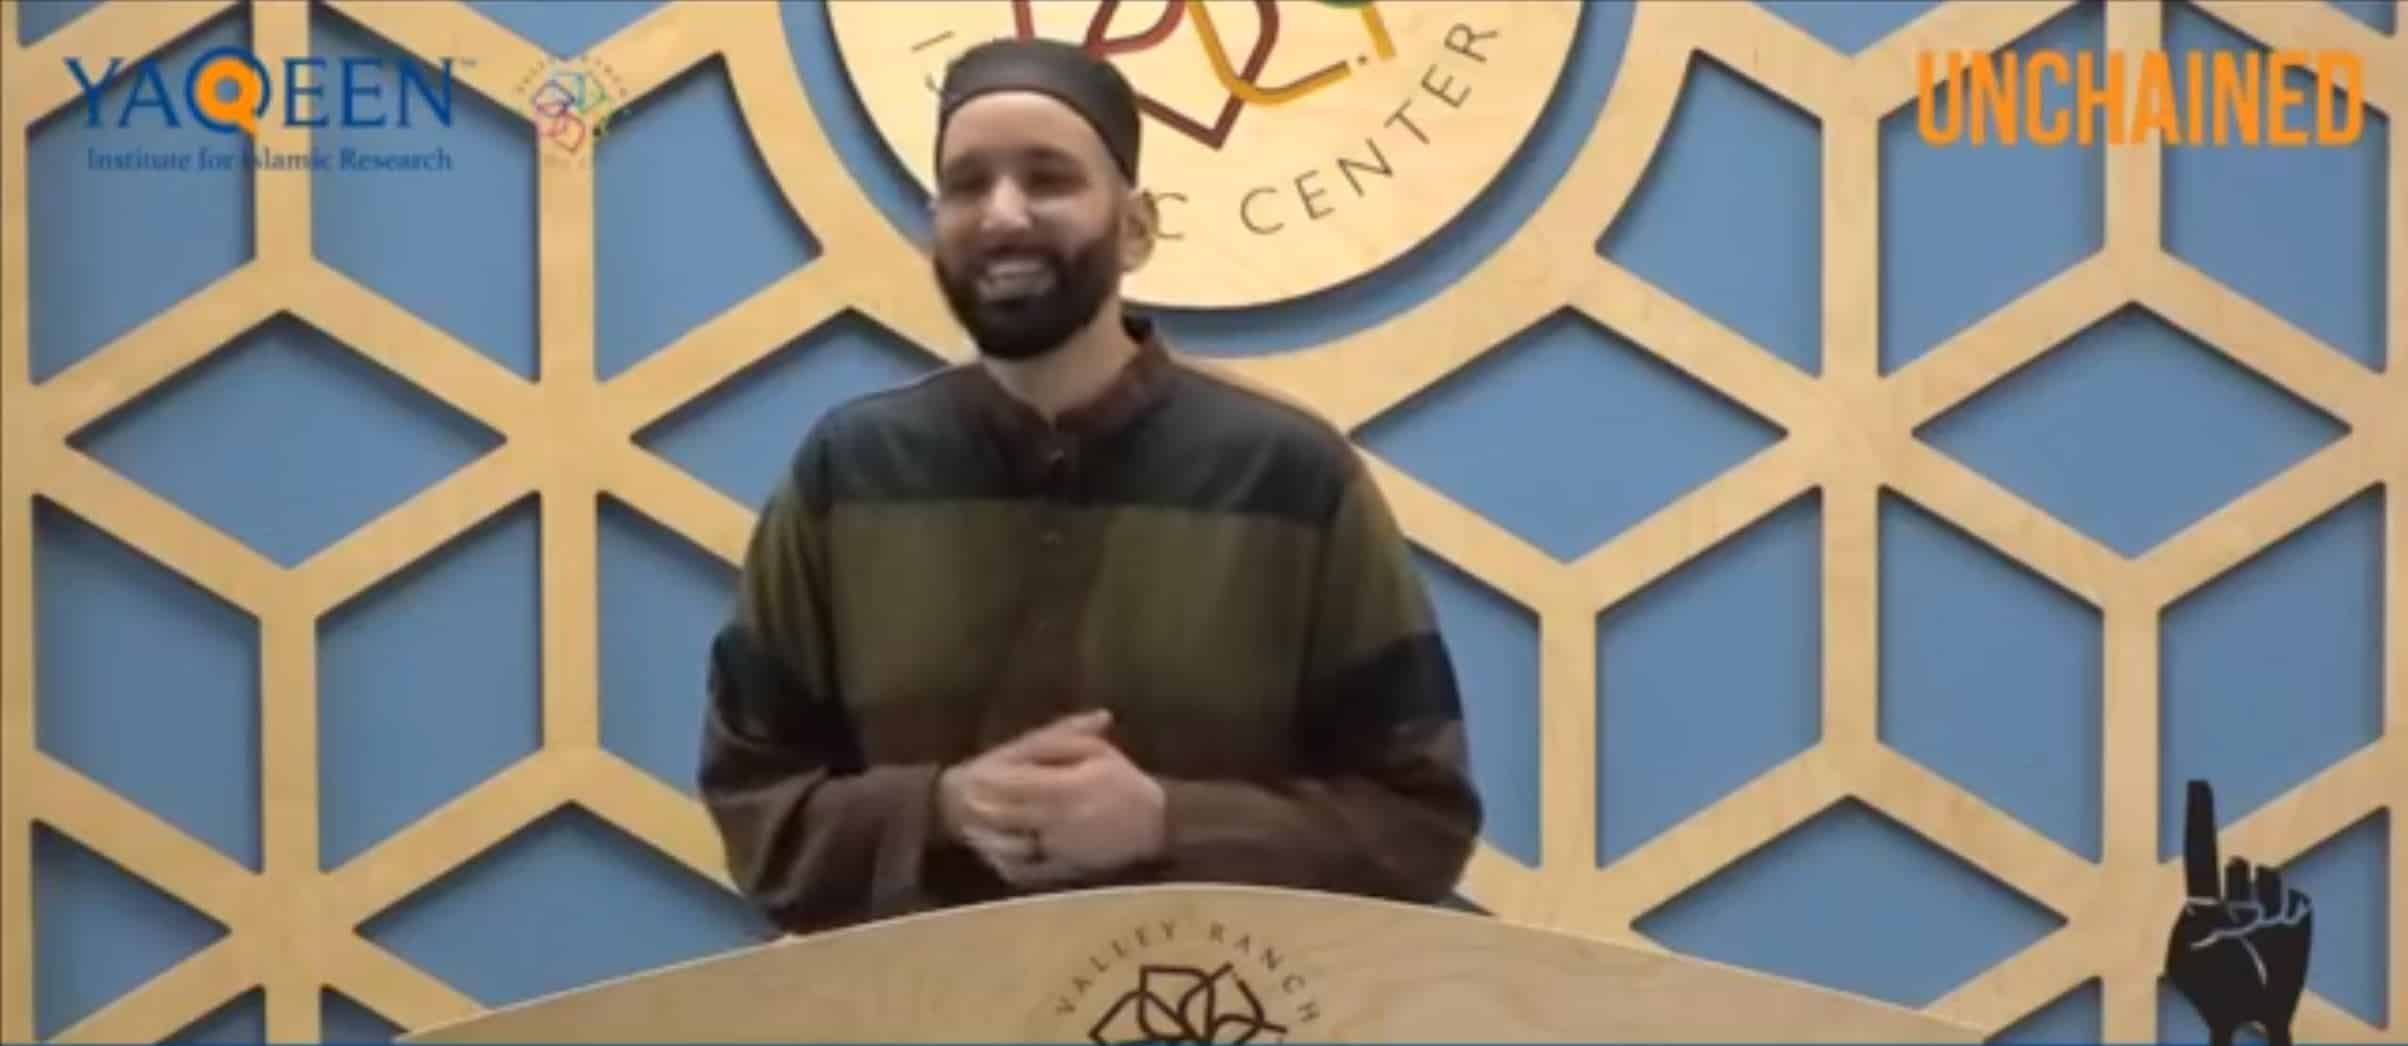 Omar Suleiman – Unchained: The Full Story of Bilal ibn Rabah